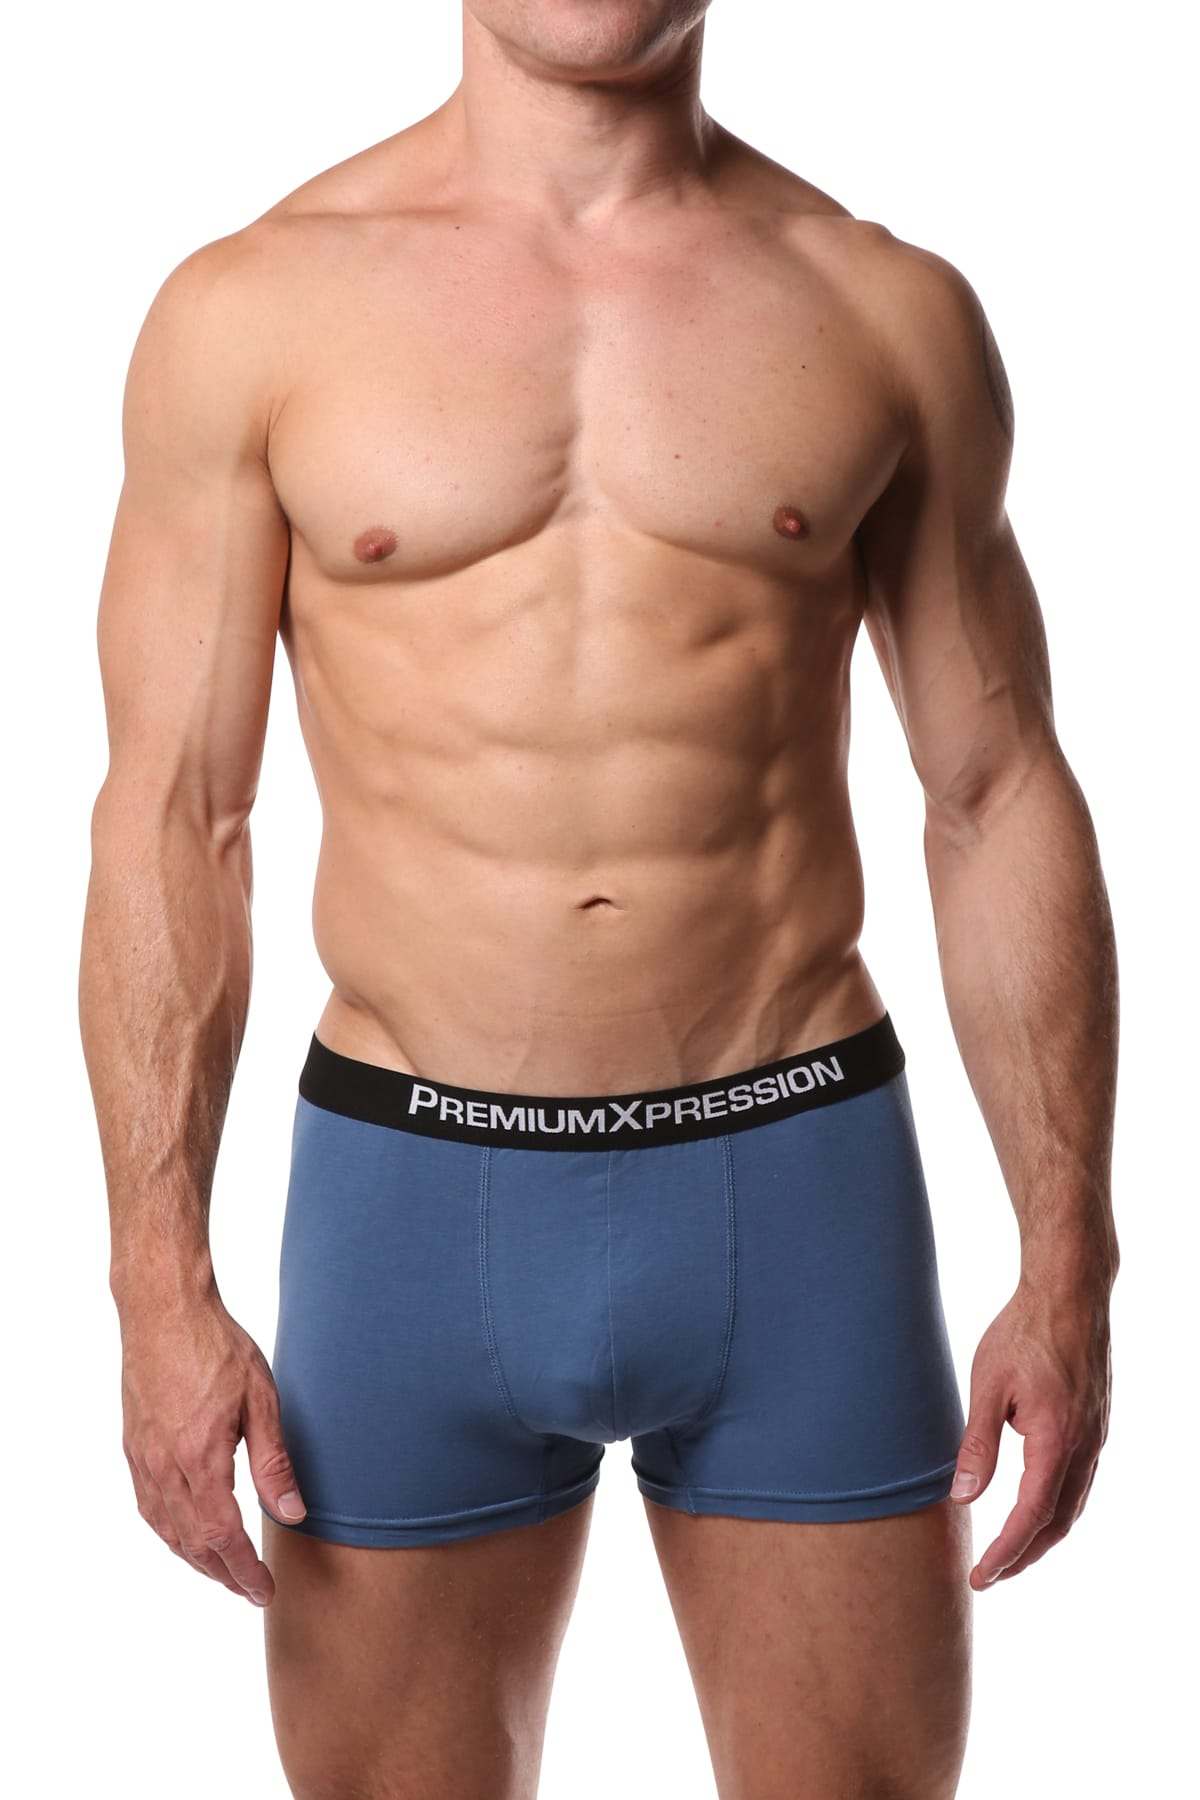 Premium Xpression Lake-Blue Trunk